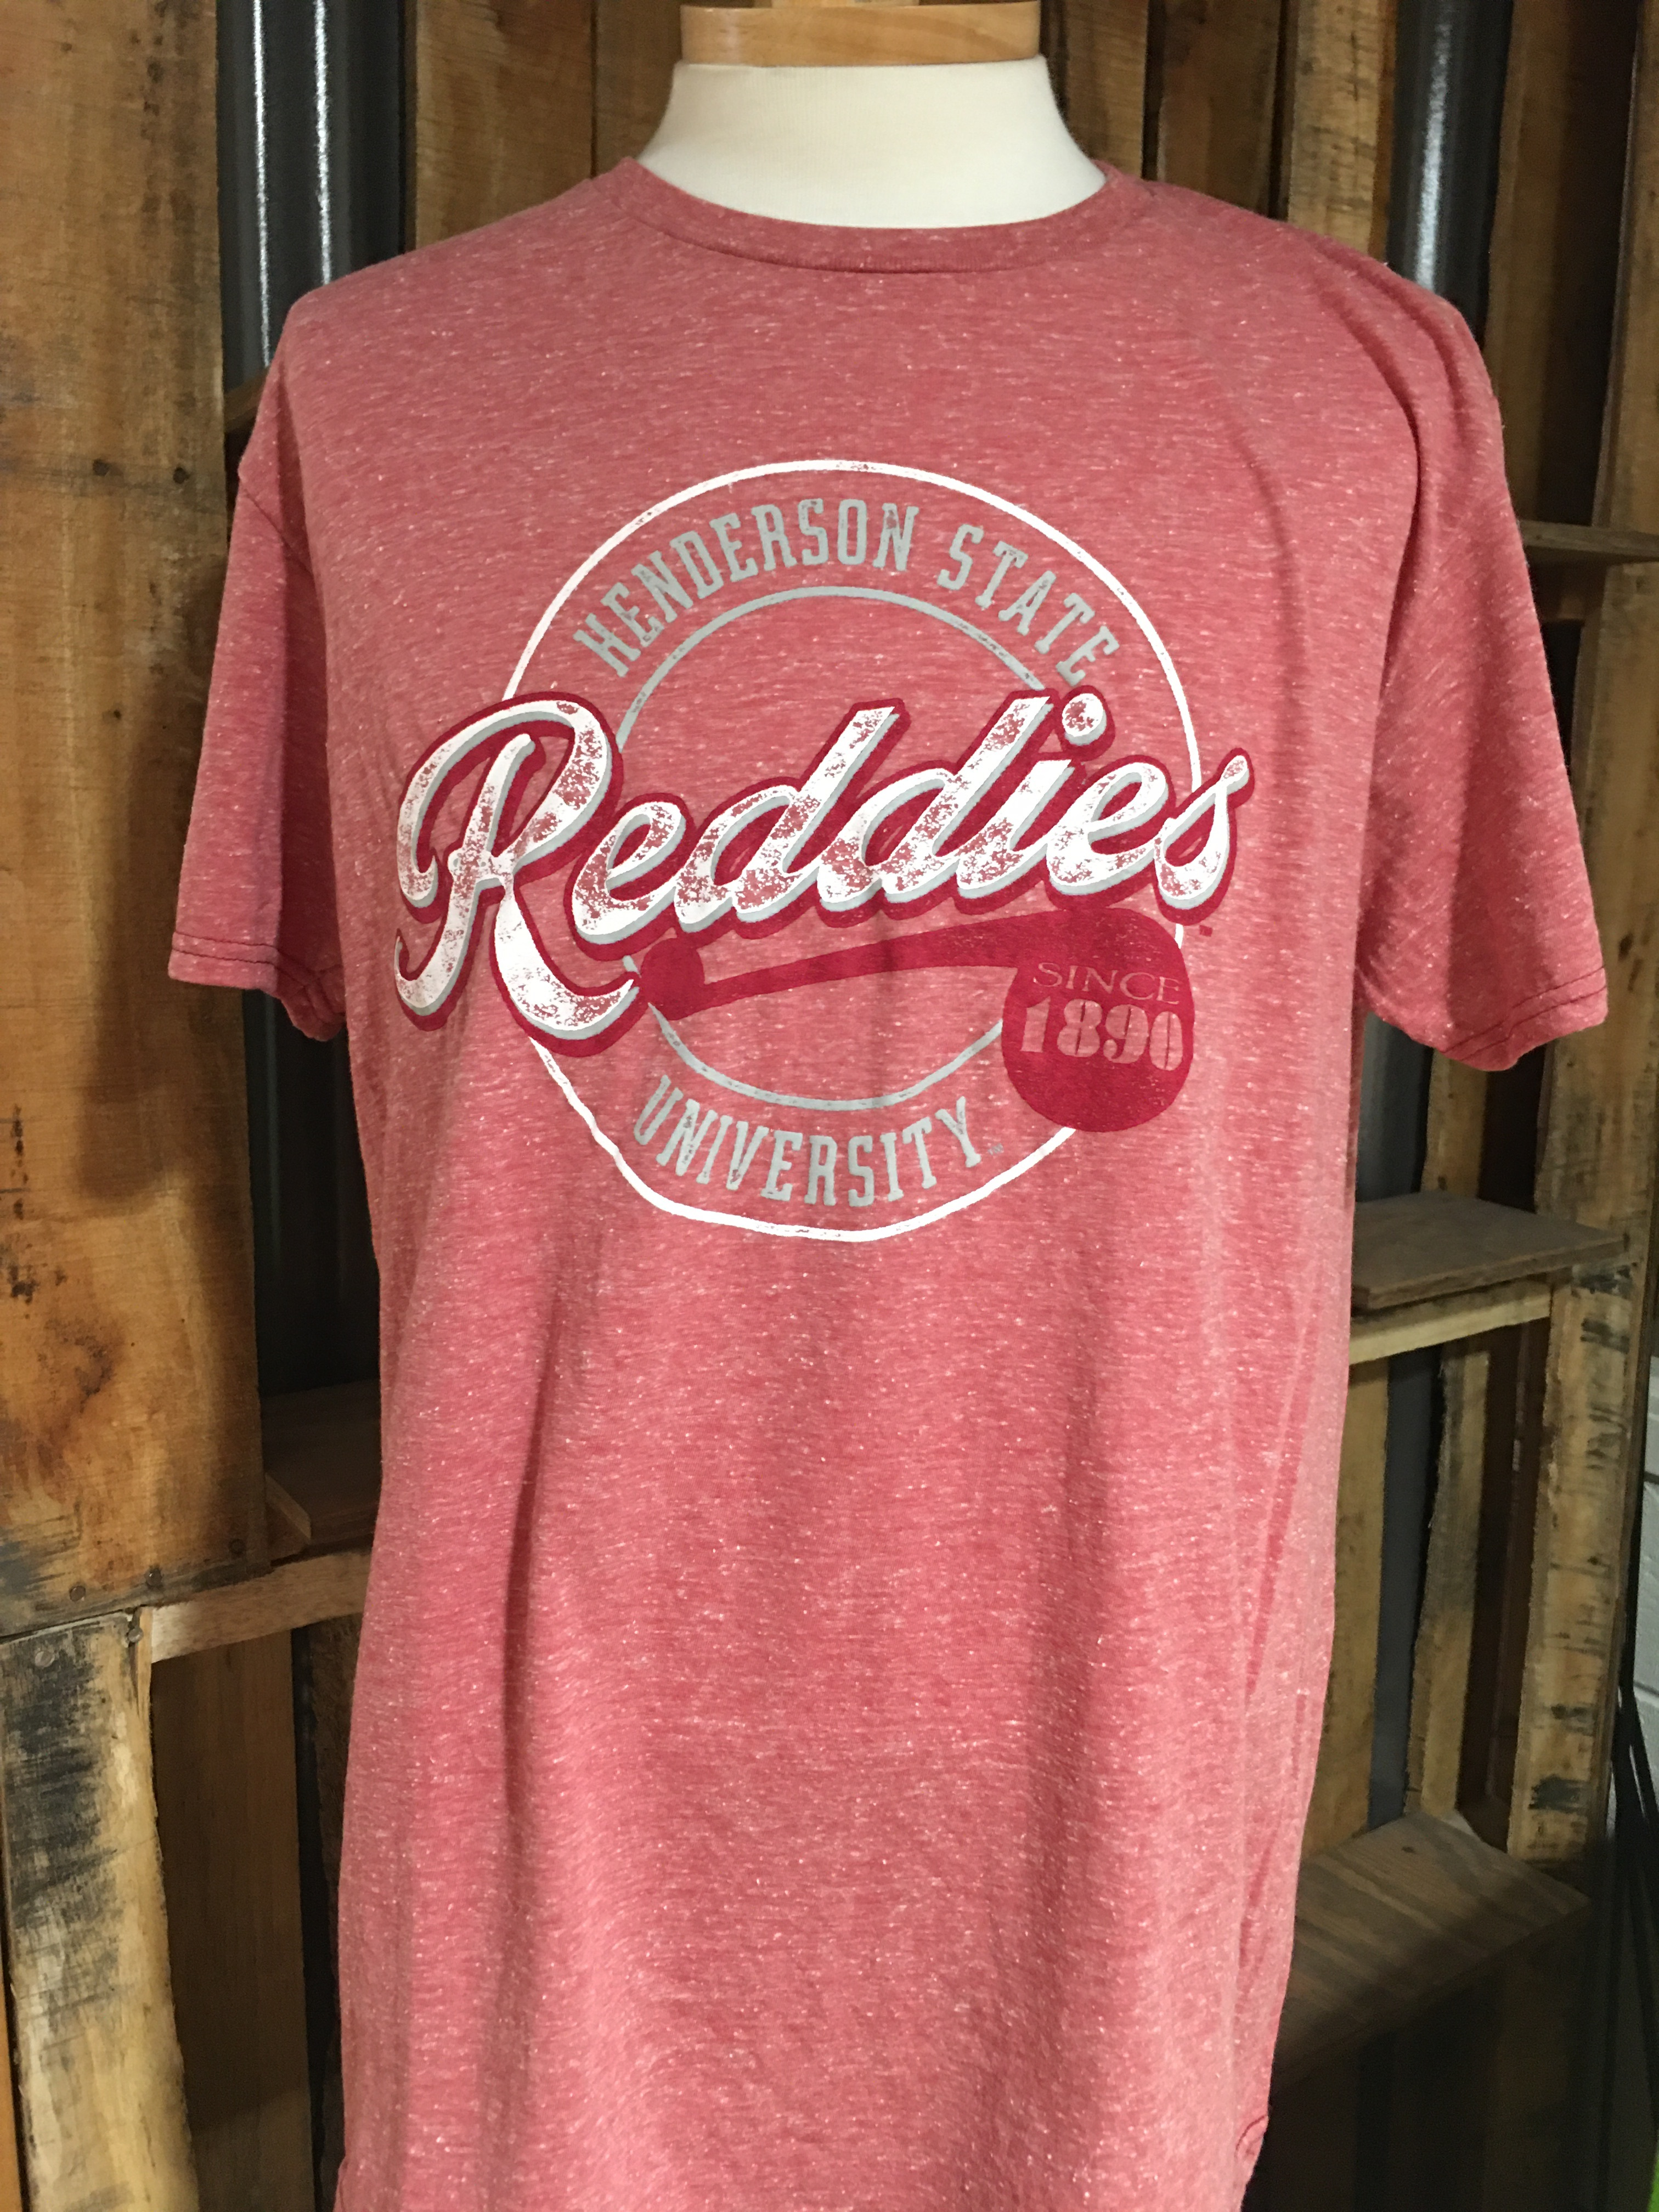 Henderson State University Reddies Since 1890 Short Sleeve T-Shirt